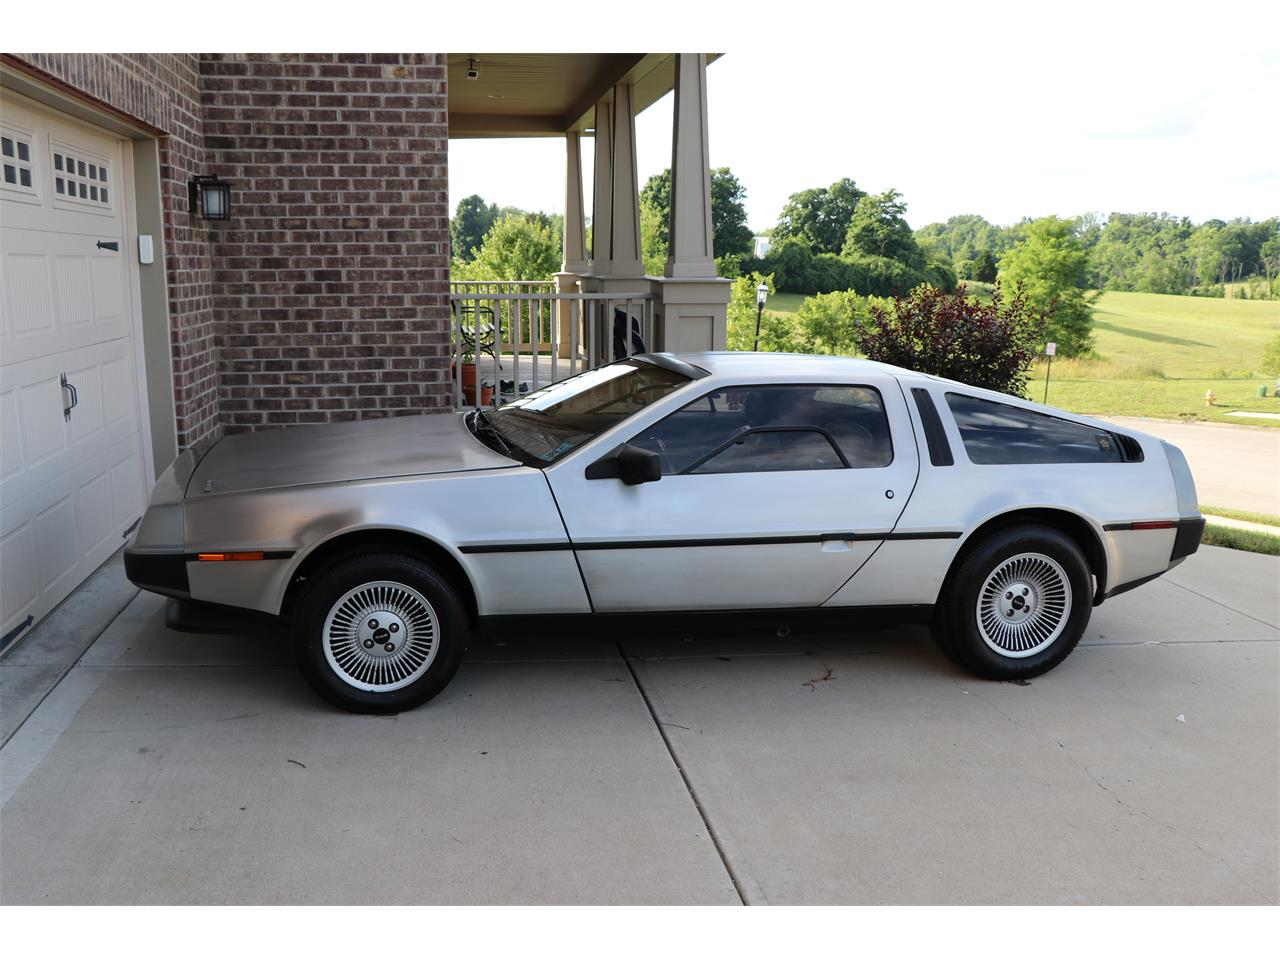 Large Picture of 1982 DeLorean DMC-12 Offered by a Private Seller - NOW5